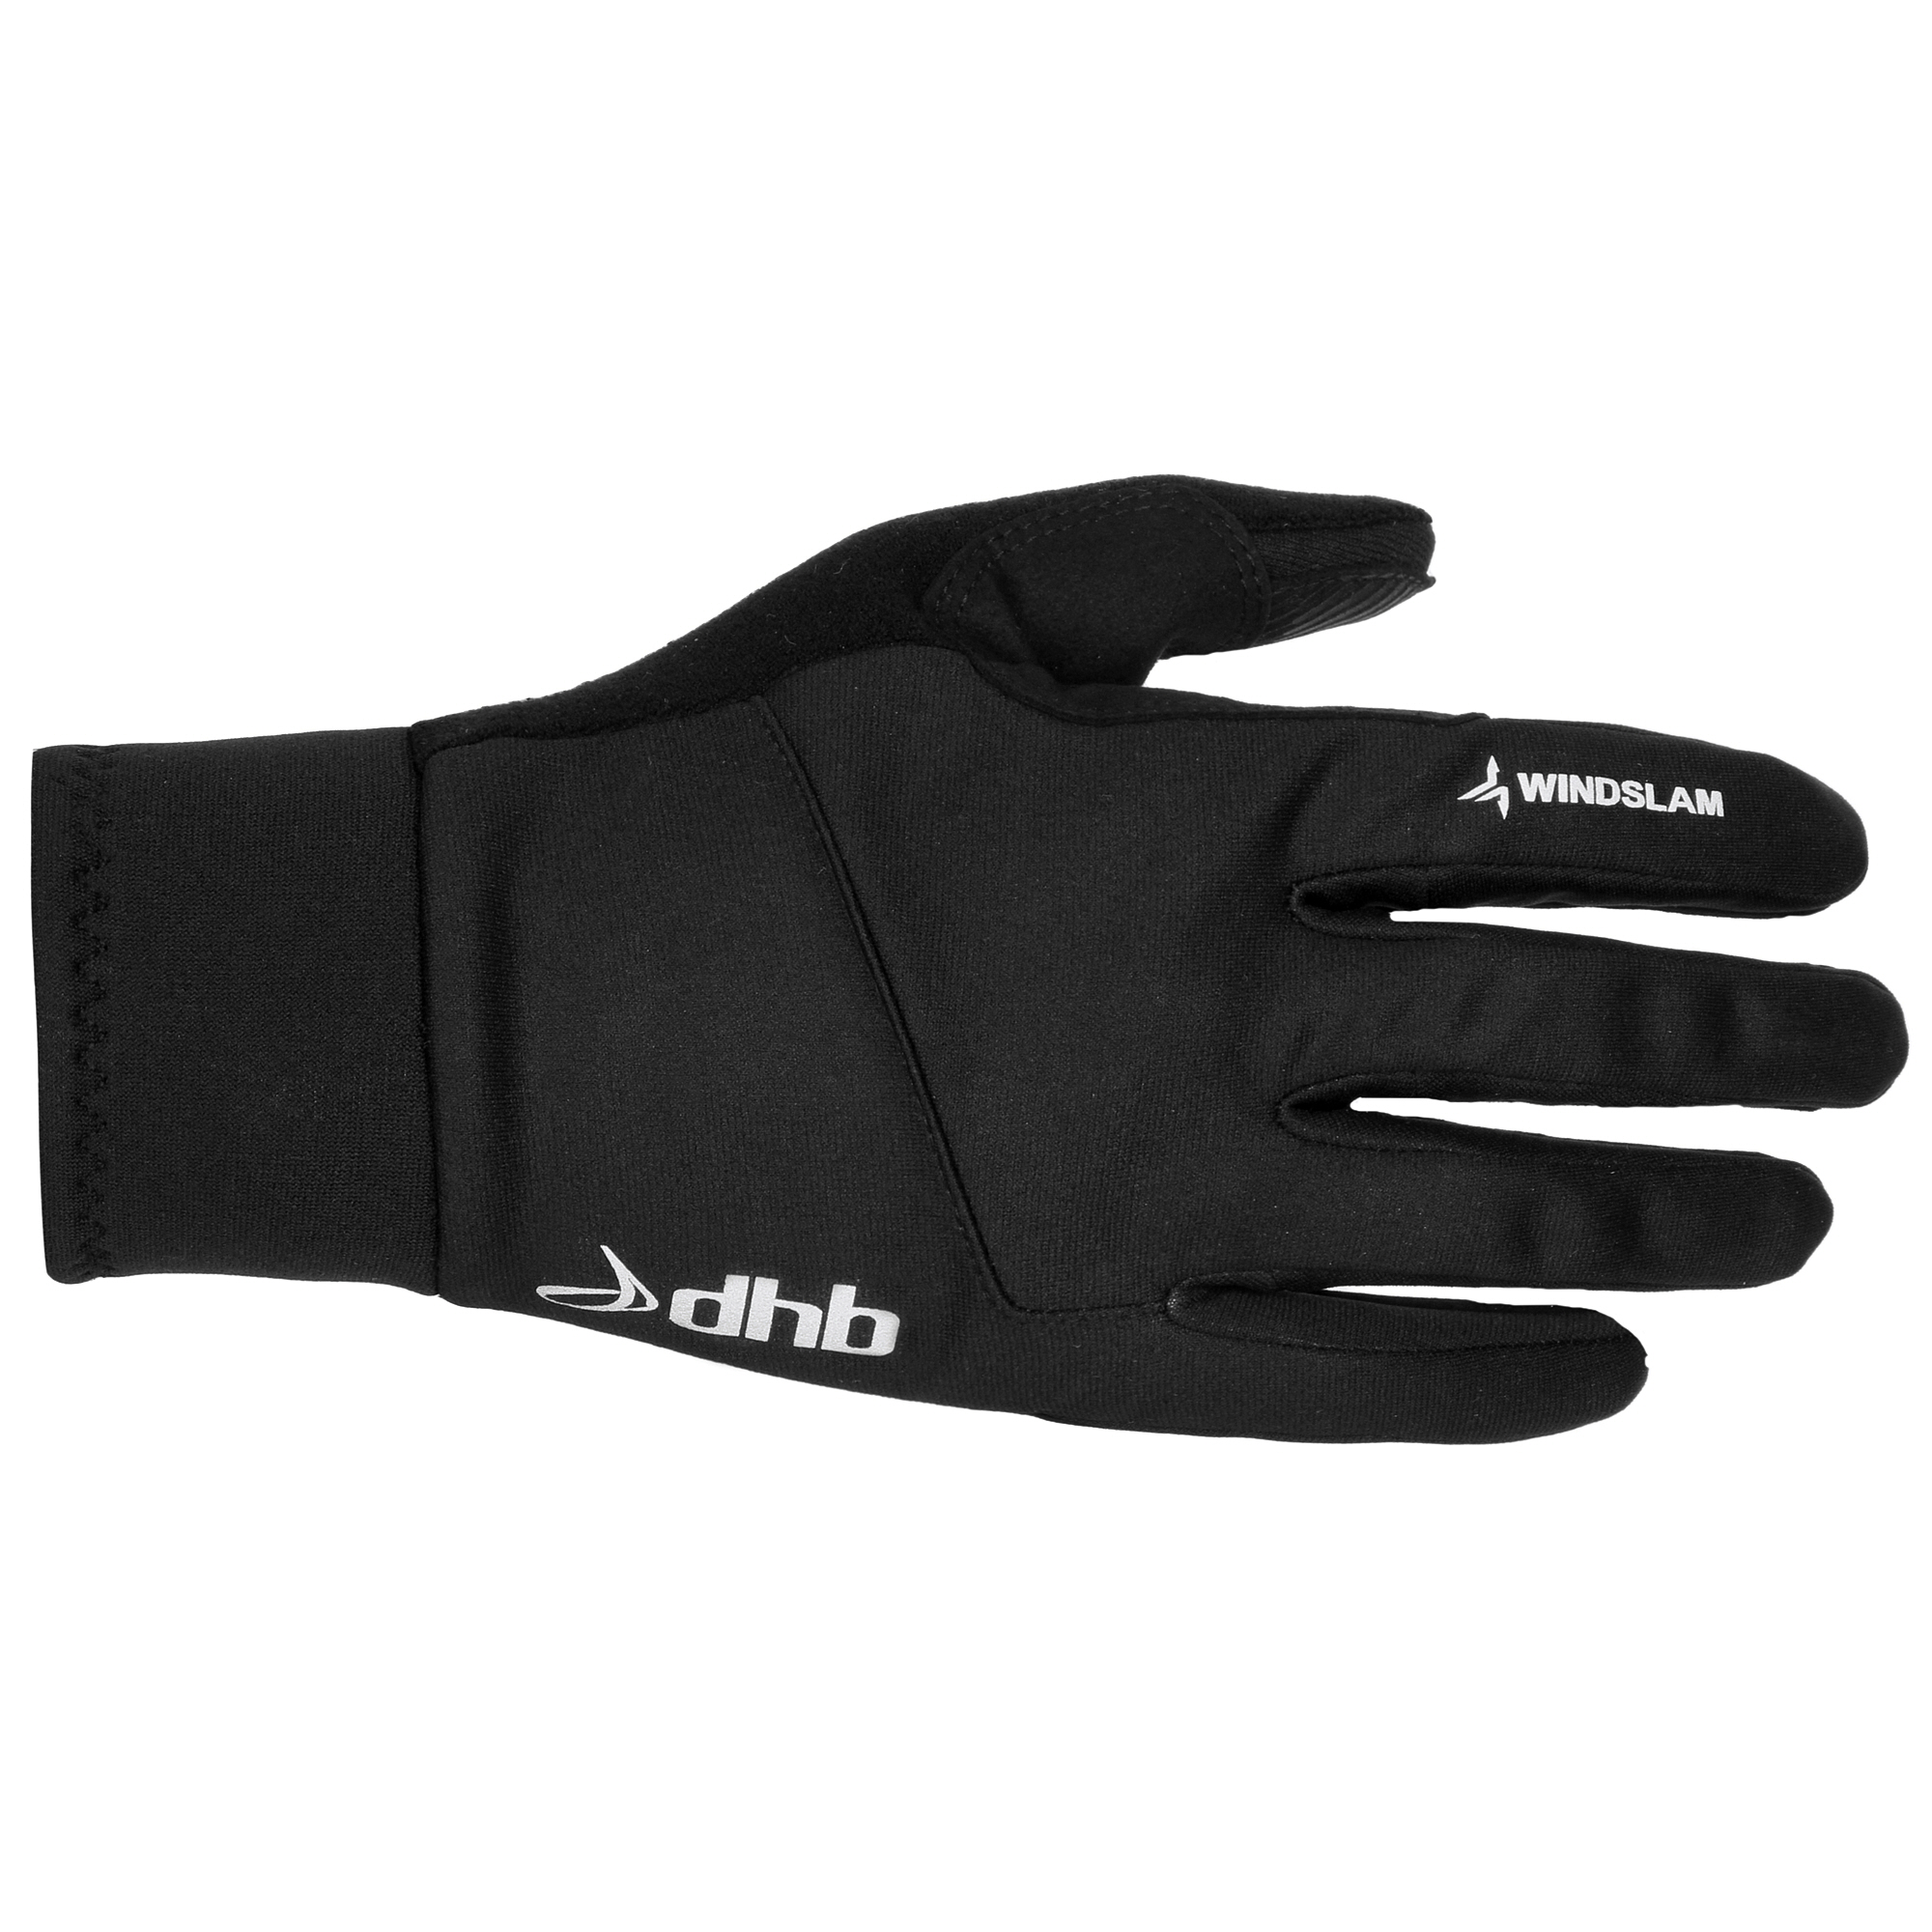 dhb Windproof Cycling Gloves | Gloves